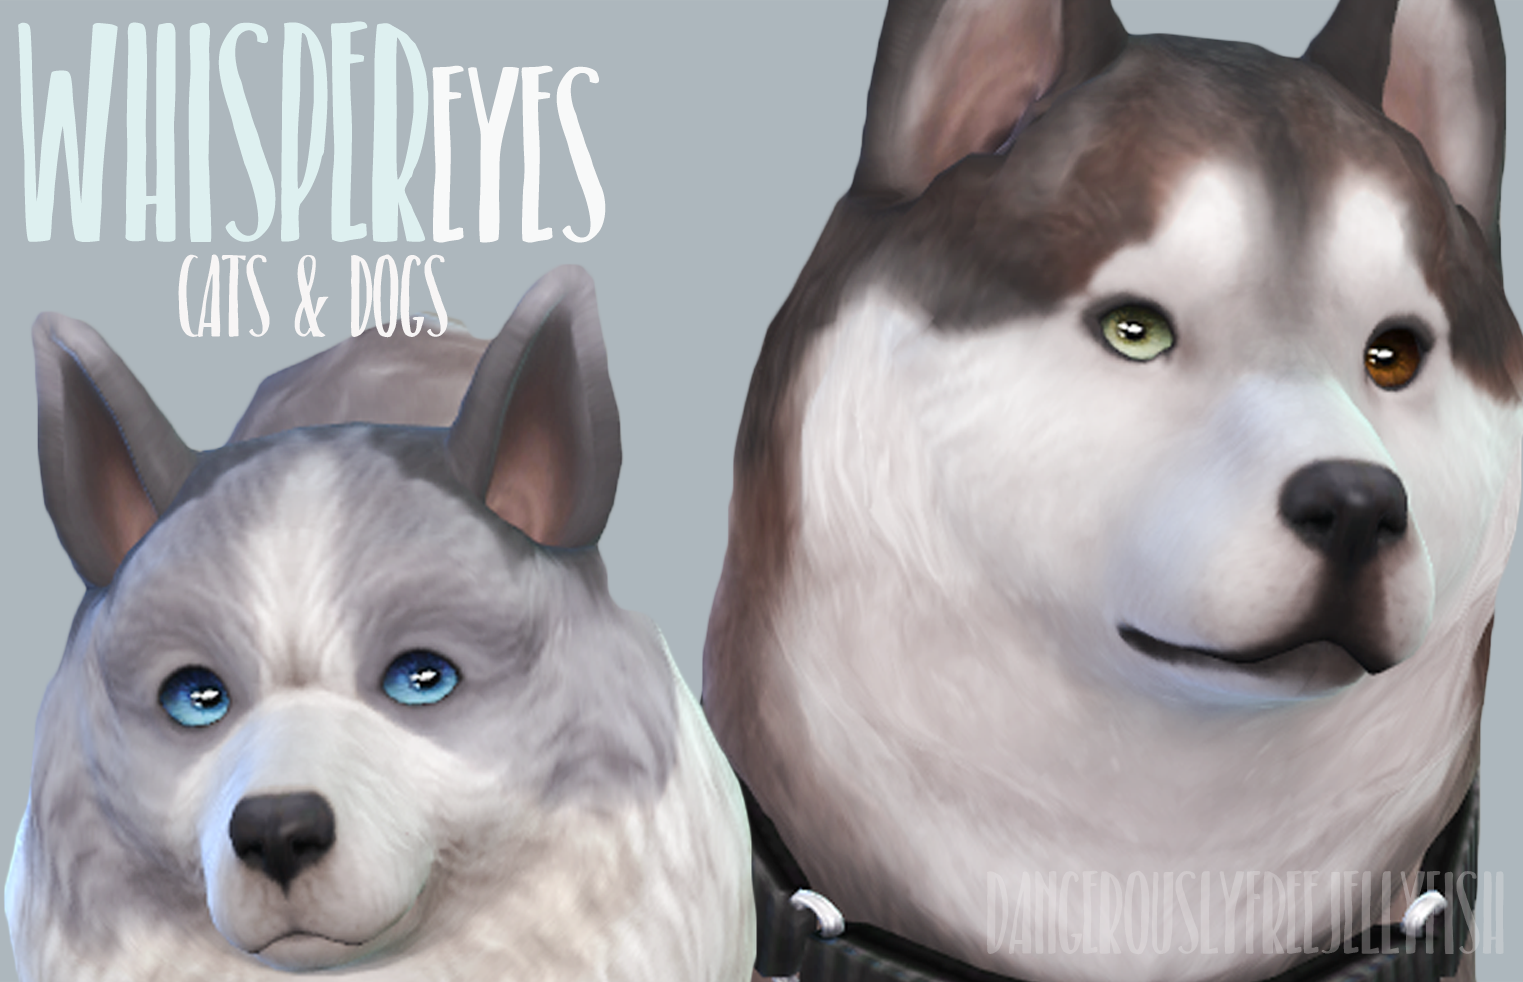 Default Replacement Eyes For Cats Amp Dogs In The Style Of My Whisper Eyes Sims 4 Pets Sims Pets Sims 4